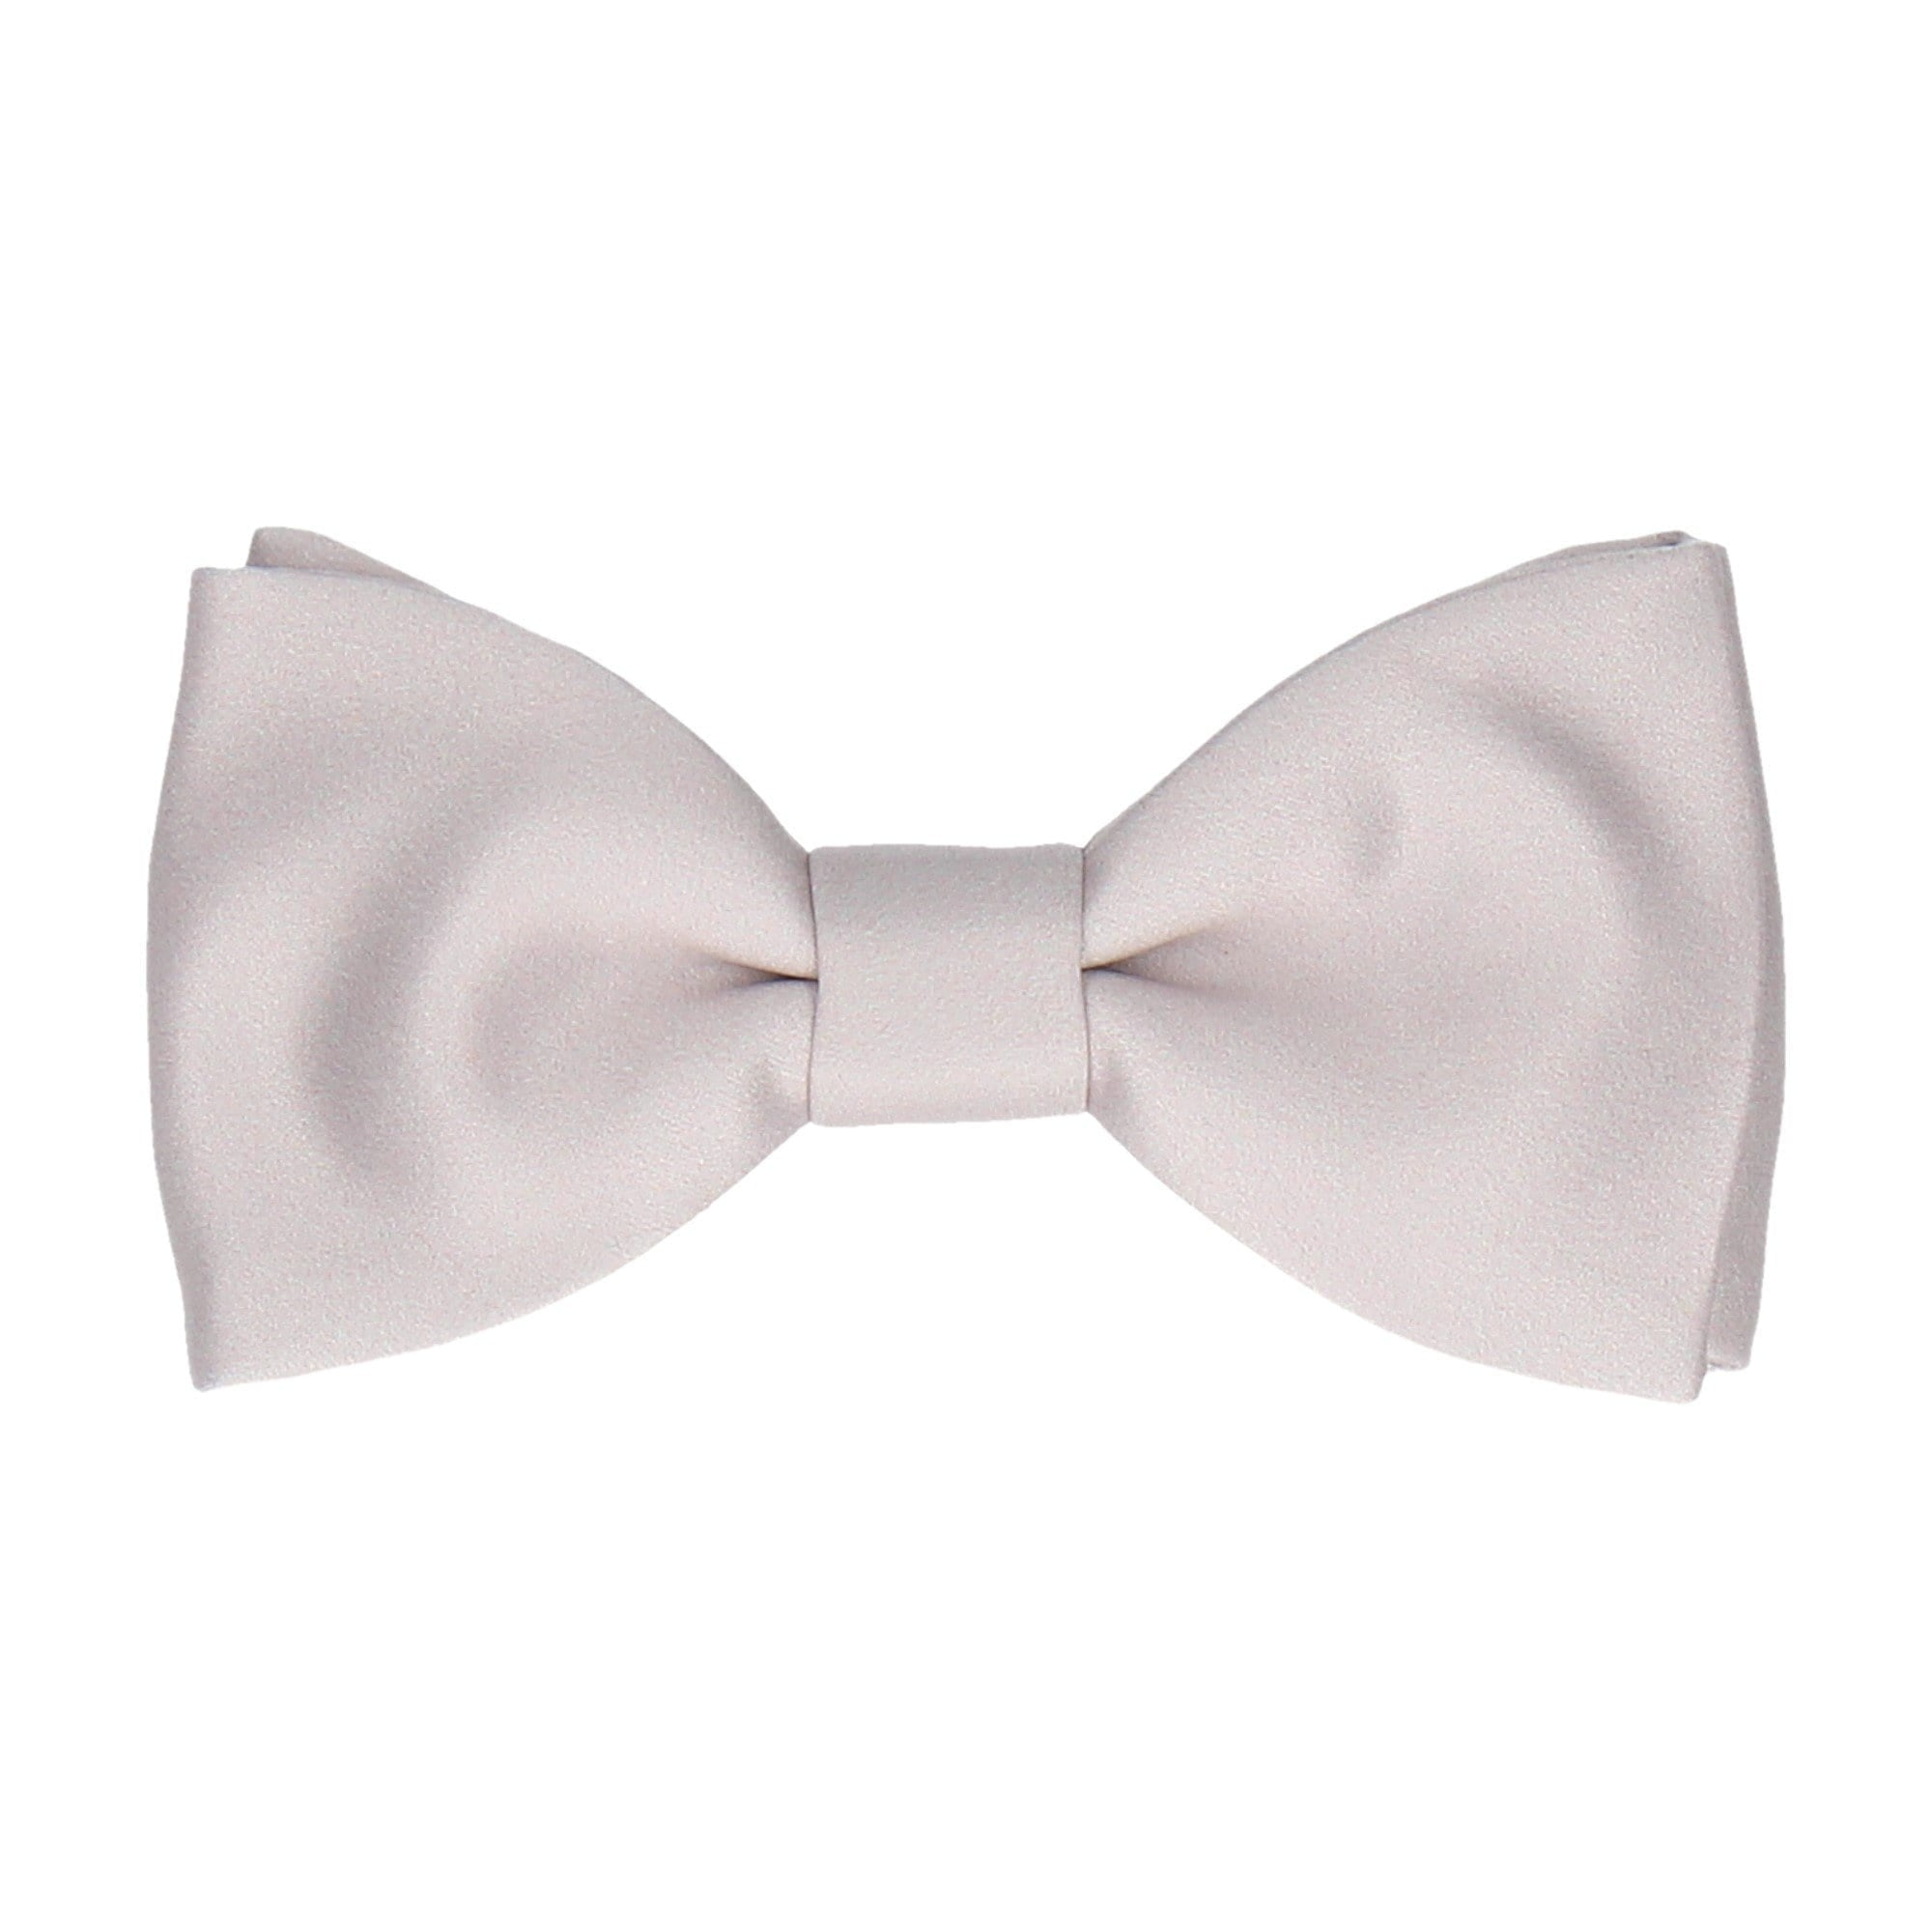 Classic in Pure Silver Bow Tie